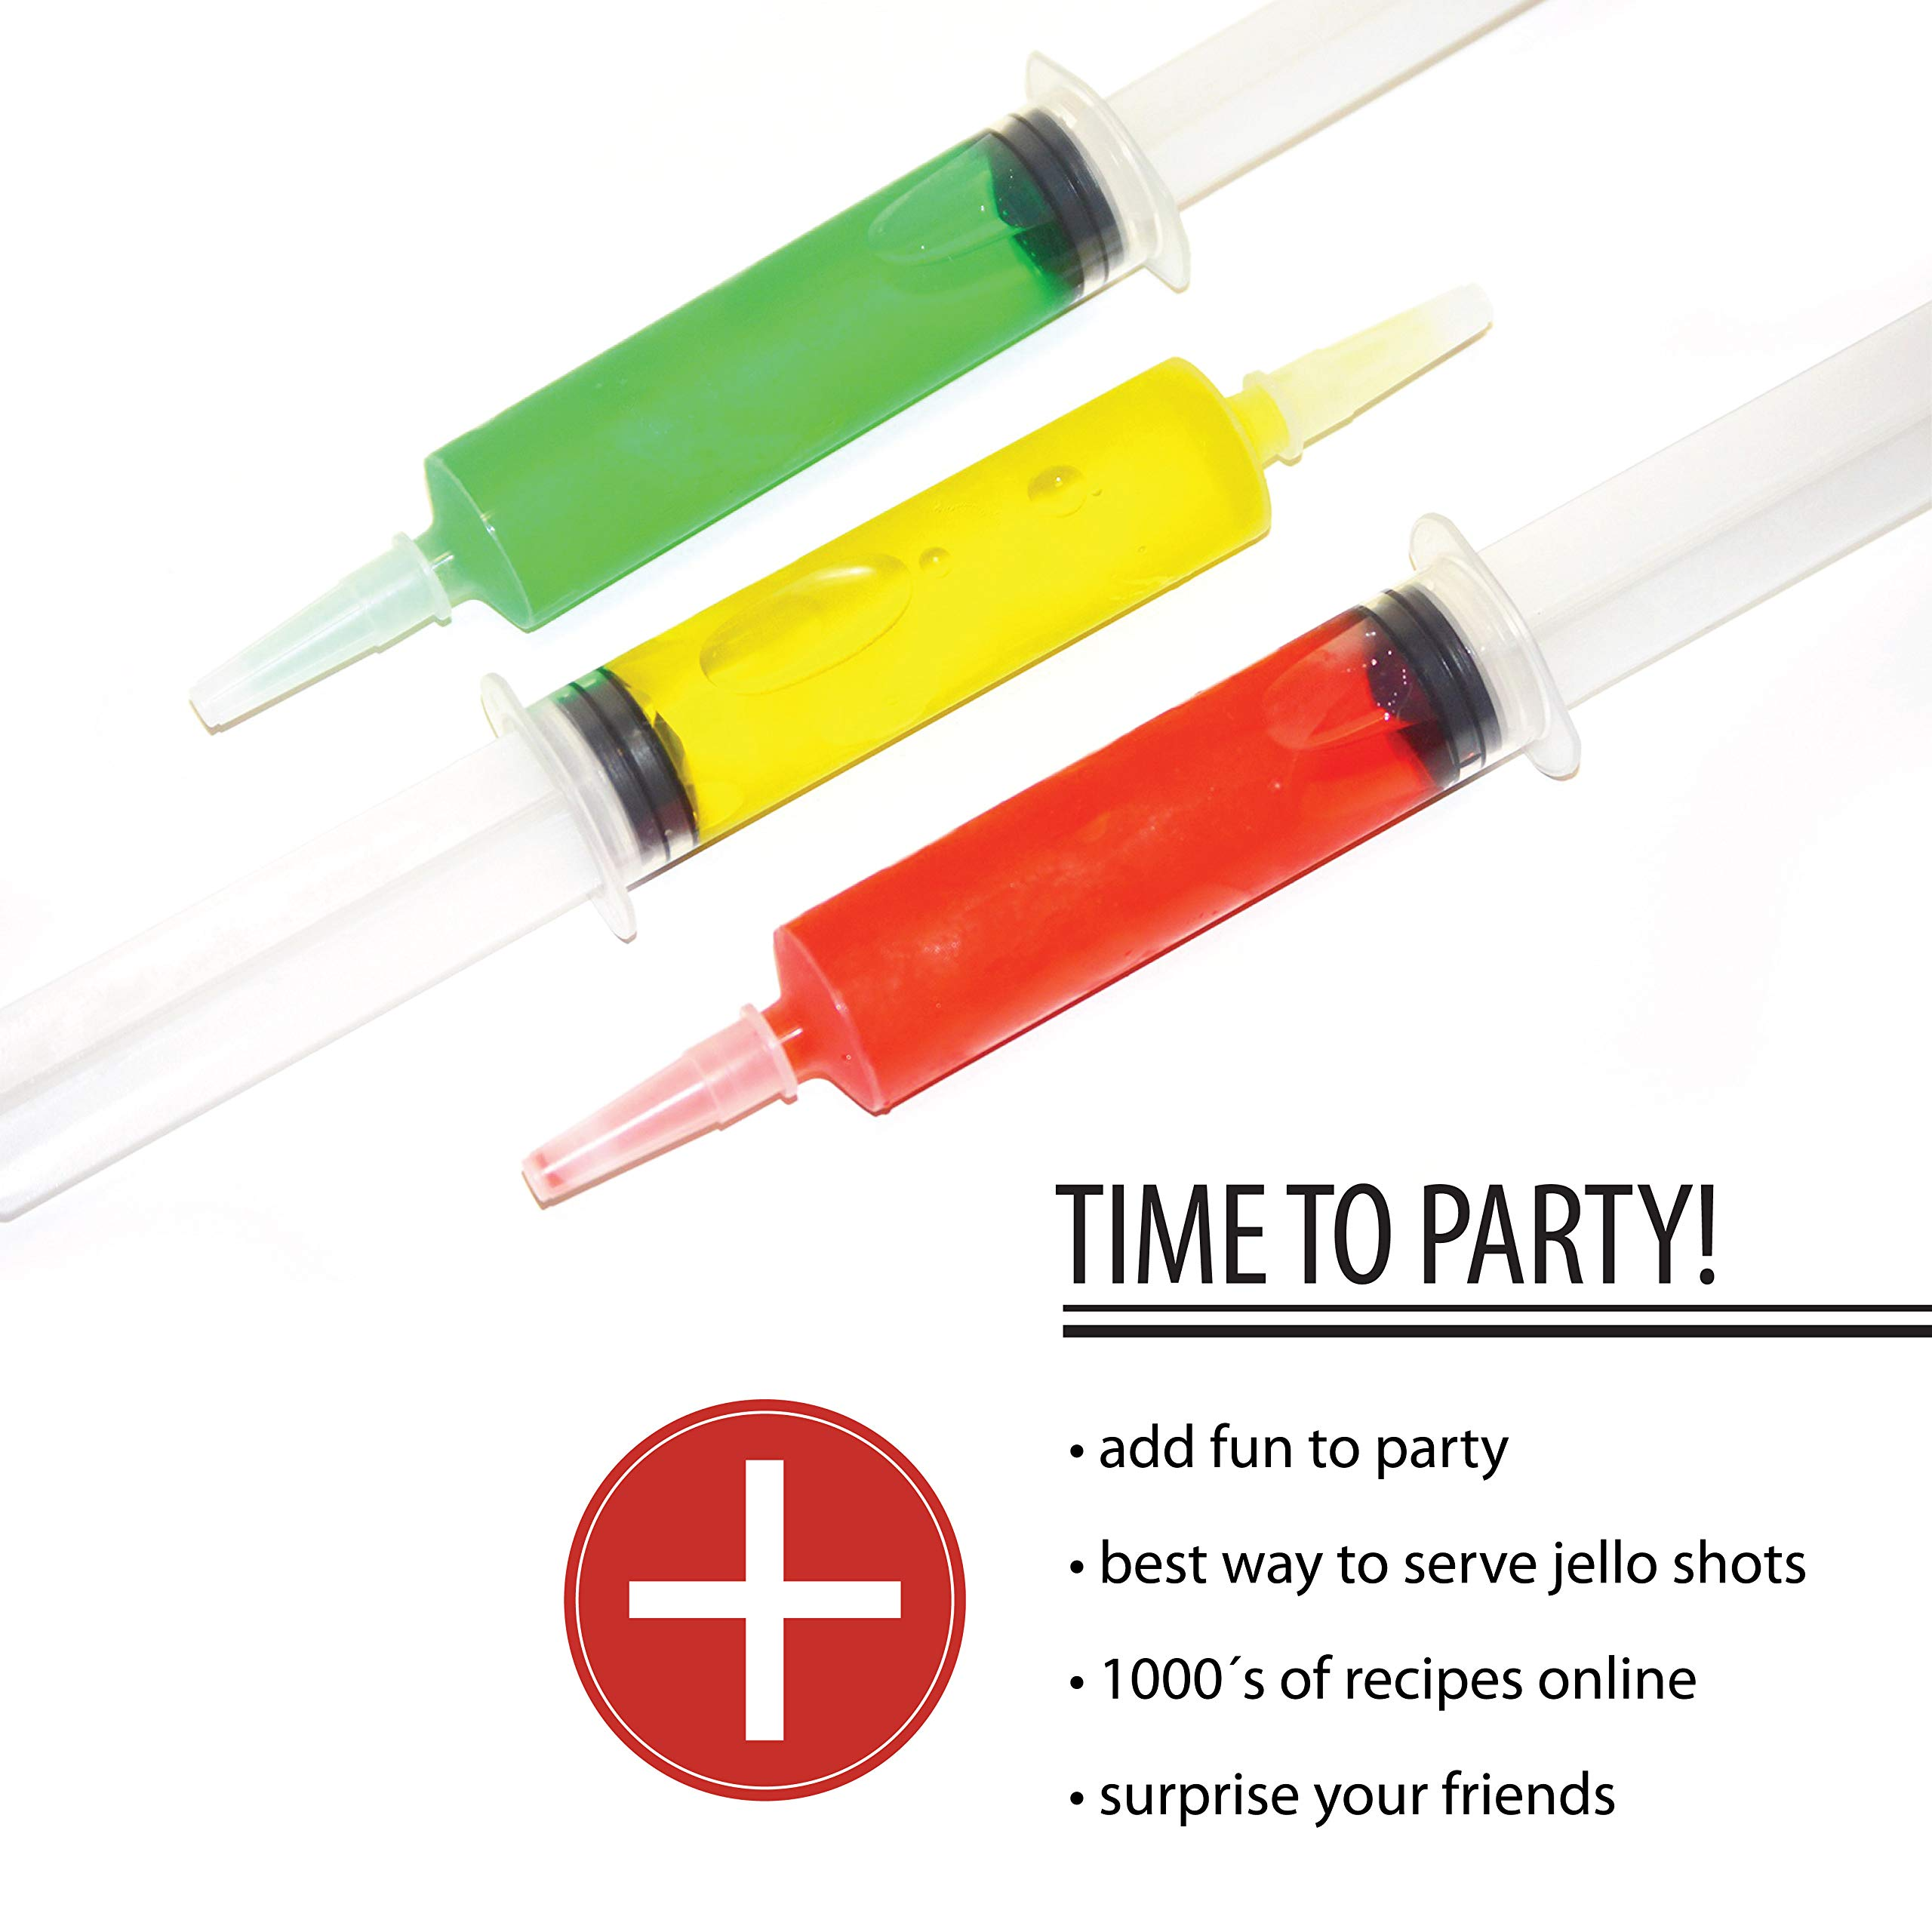 Jello shot syringes 50 pack (2oz) Reusable edible/drink Party seringe alcohol shots. Perfect supplies for Halloween, bachelor/bachelorette, college parties, drinking games, nurse, ladies, Summer Fun by Deke Home (Image #4)